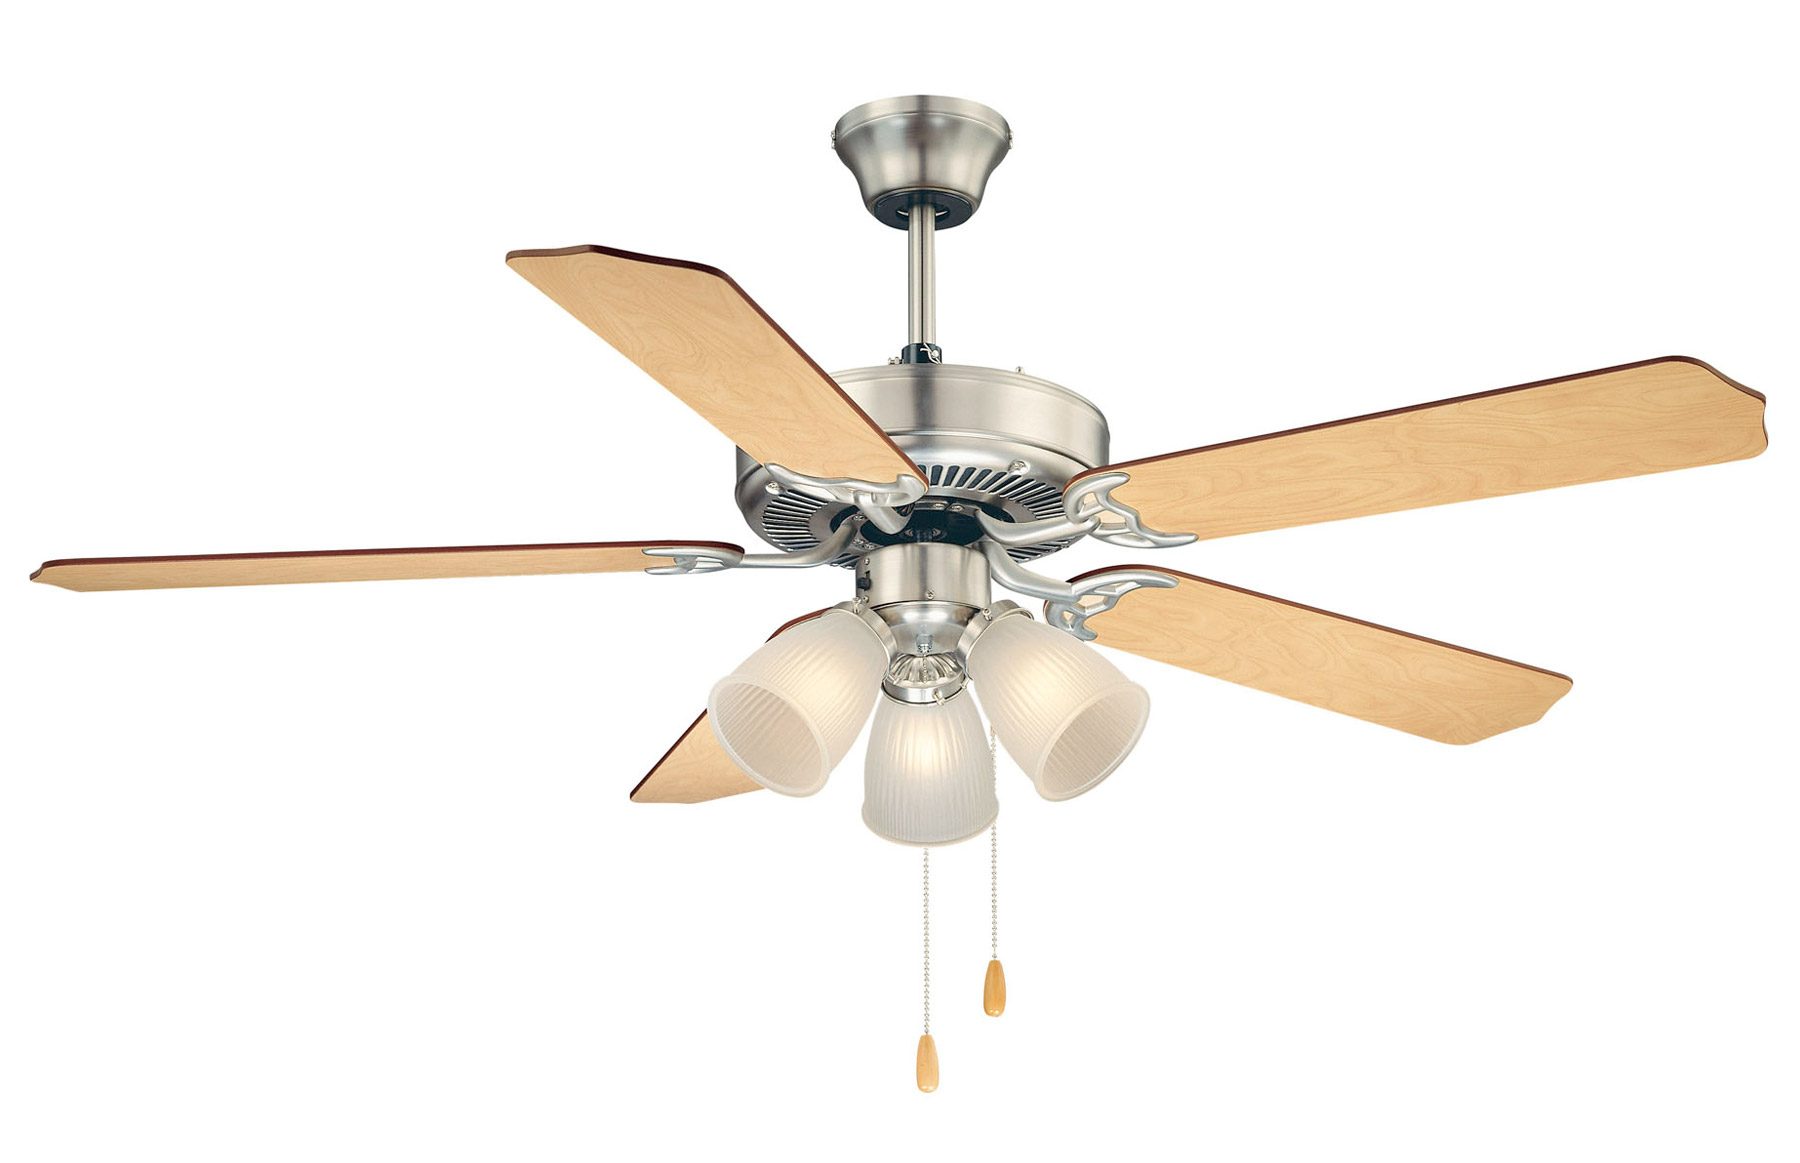 Savoy House Ceiling Fan Savoy House 52 624 5cn 13 Hyannis 52 Indoor Ceiling Fan